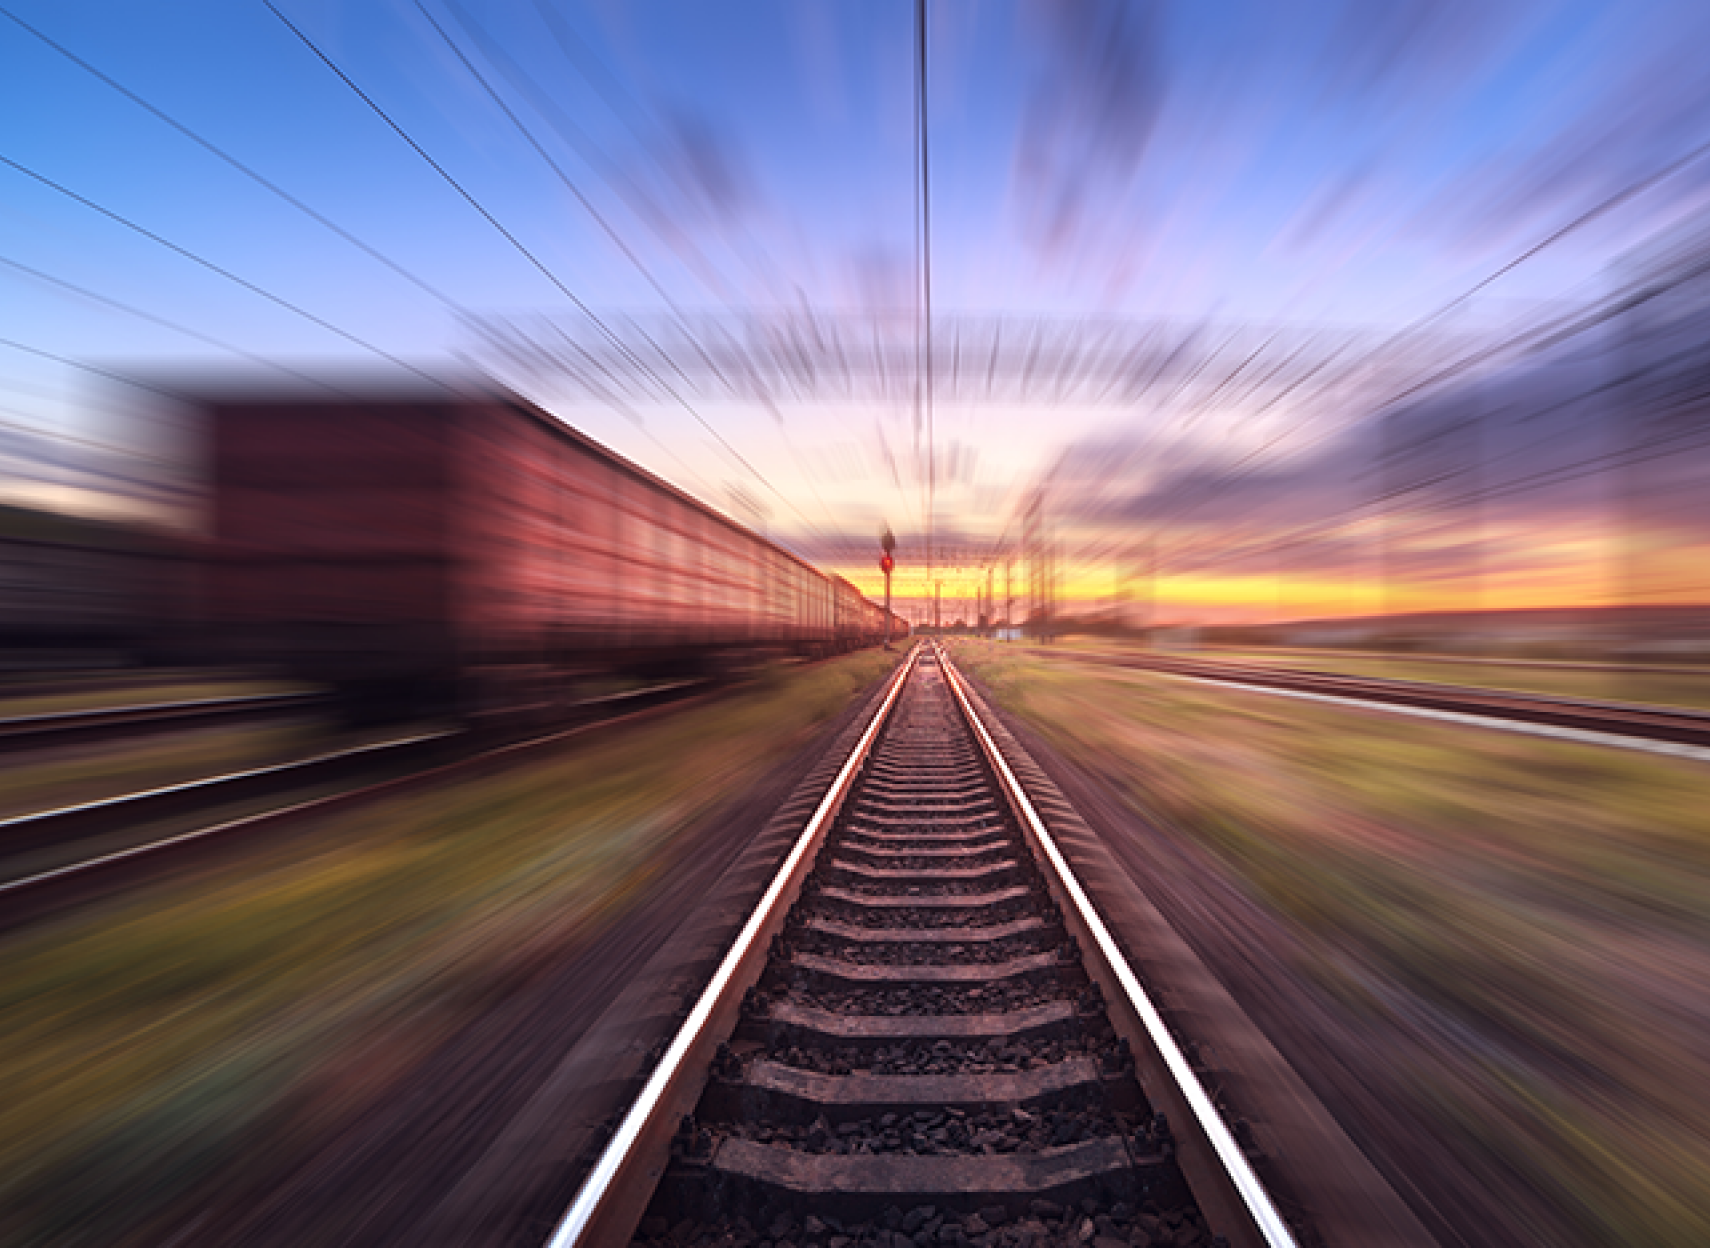 blurred image of a railway